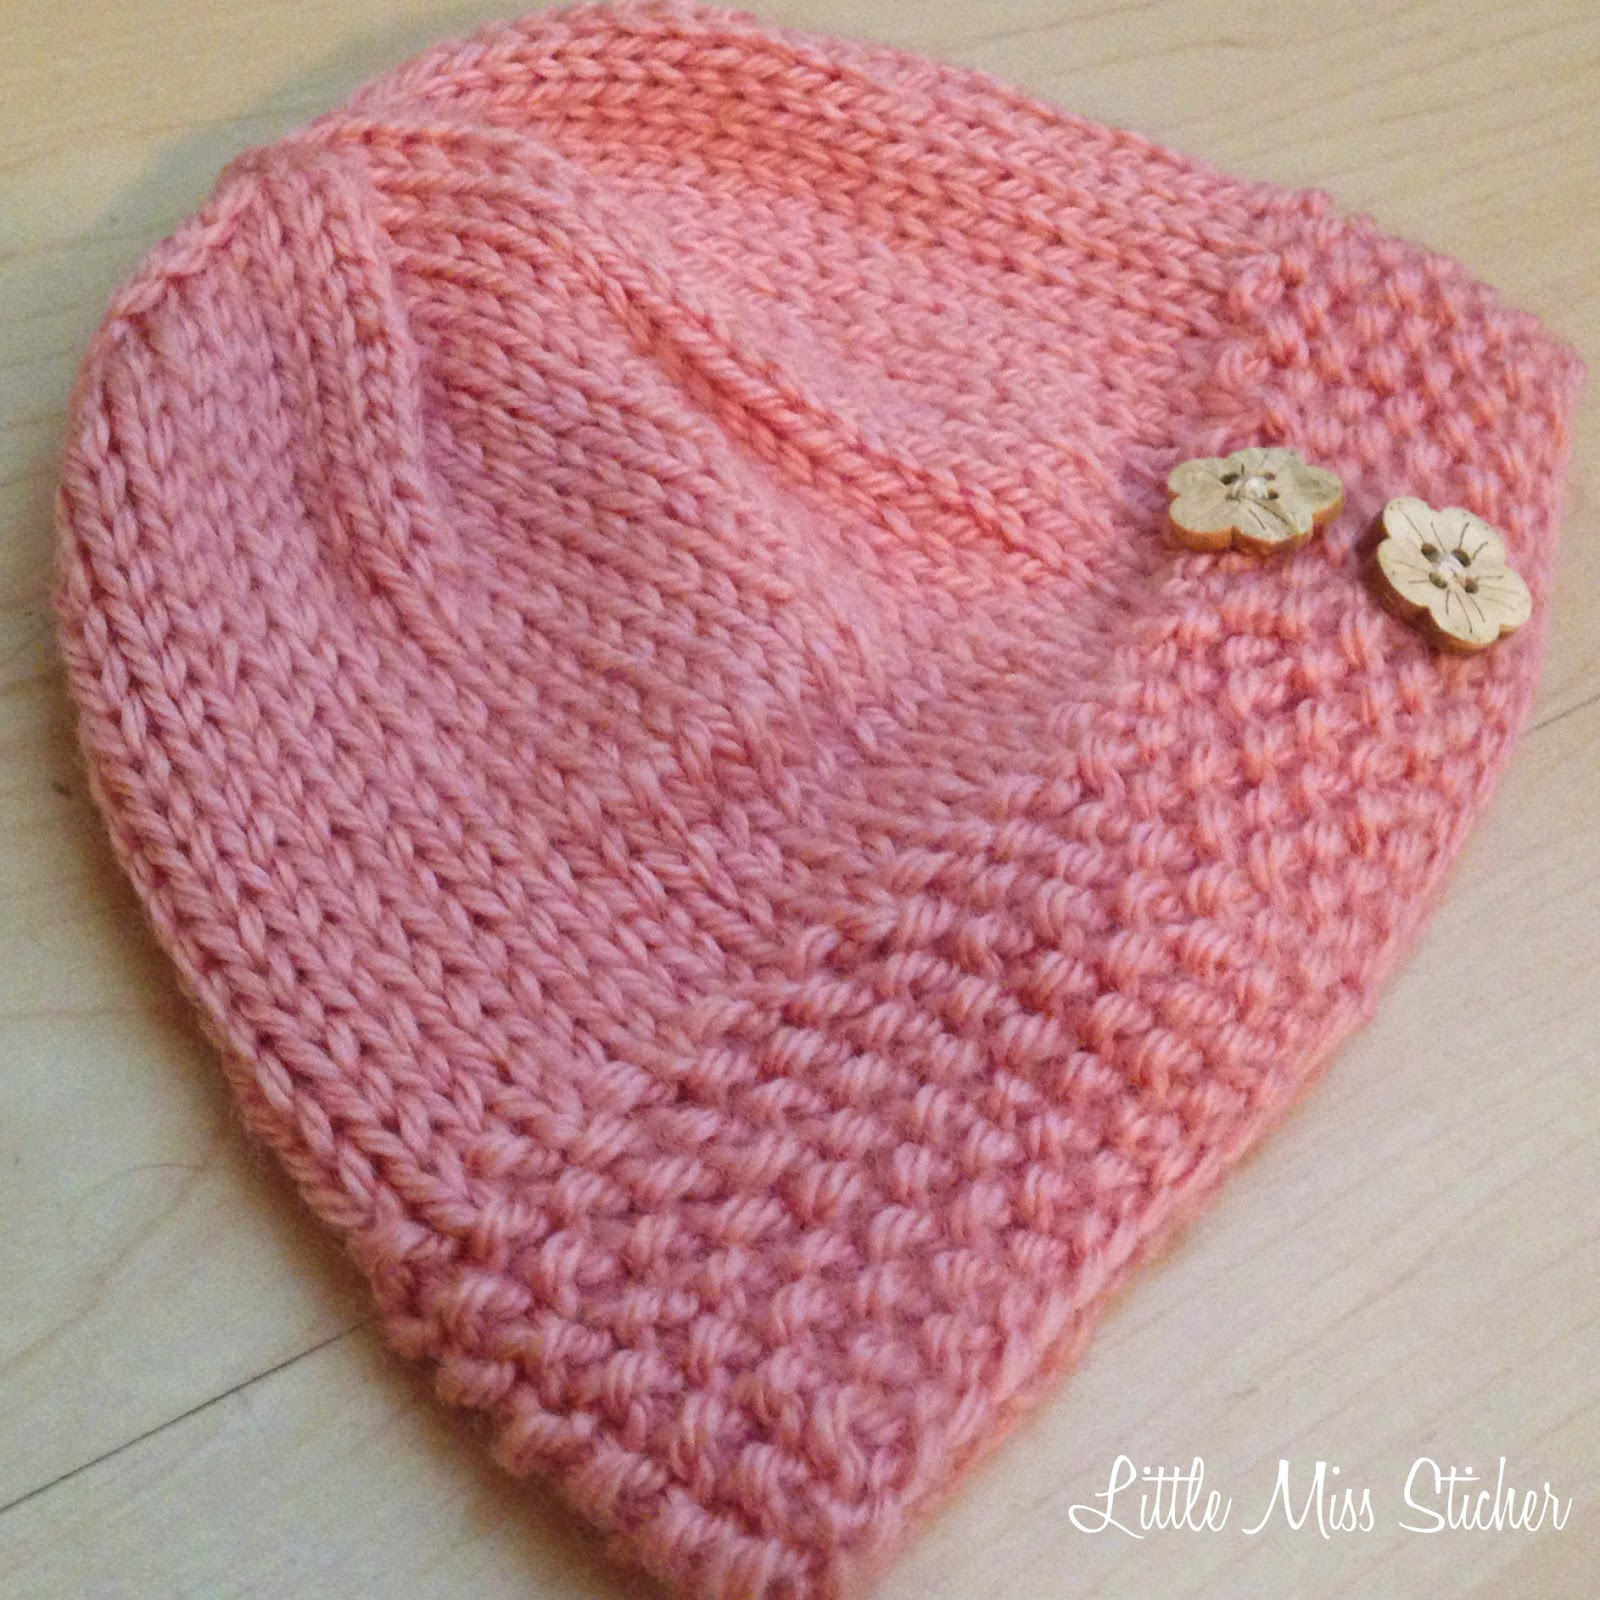 Free Knitting Patterns For Newborn Hats Easy Knitting Patterns For Hats Free